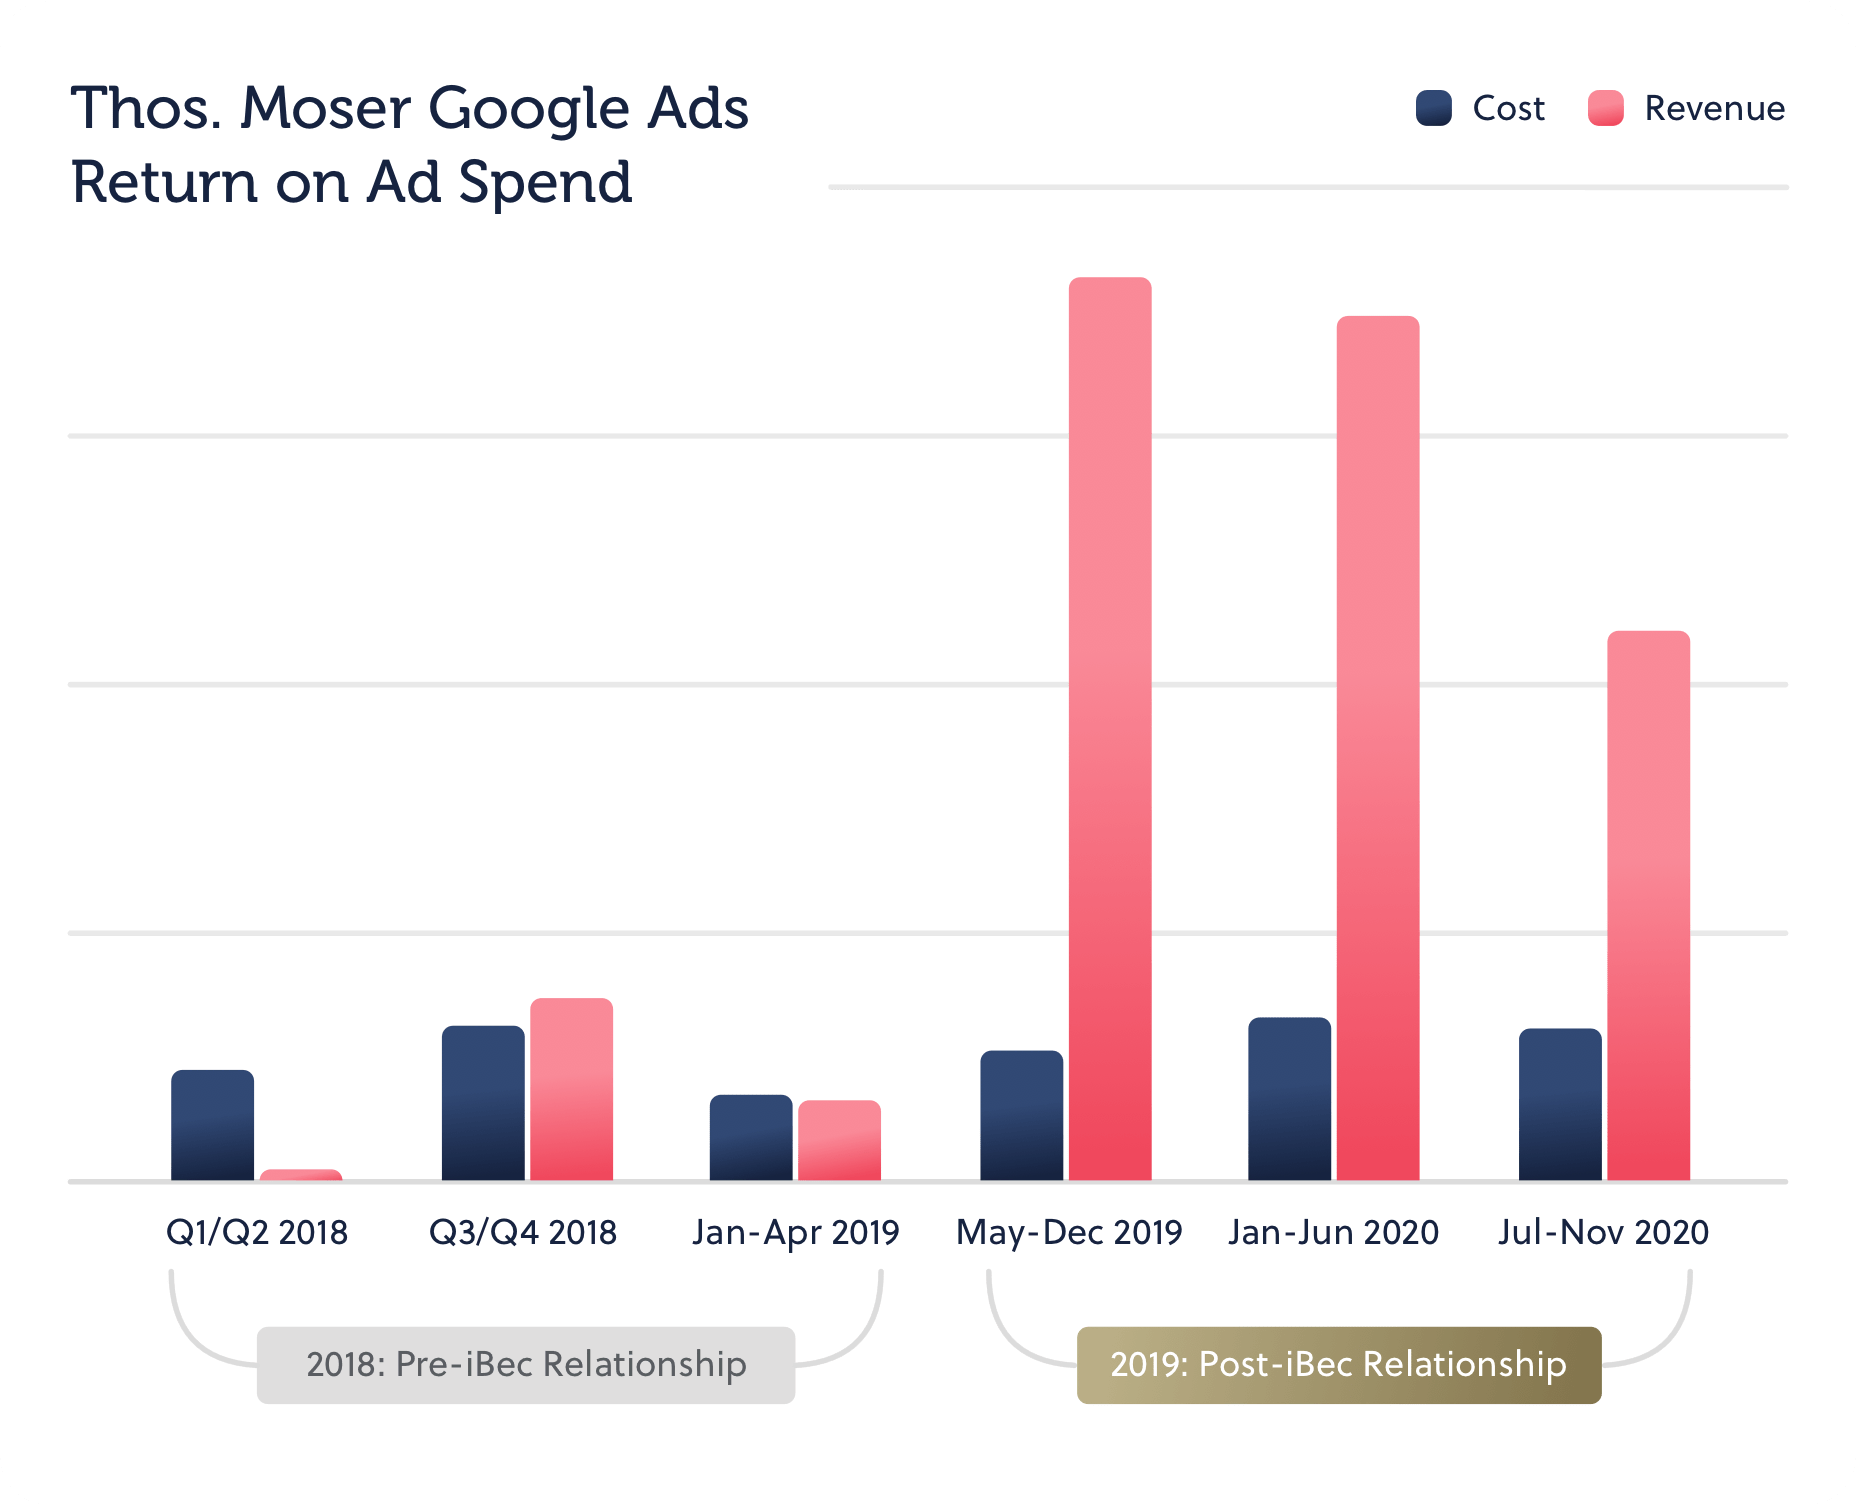 Thos. Moser results graph showing a 615% increase in return on ad spend for their Google ad campaign